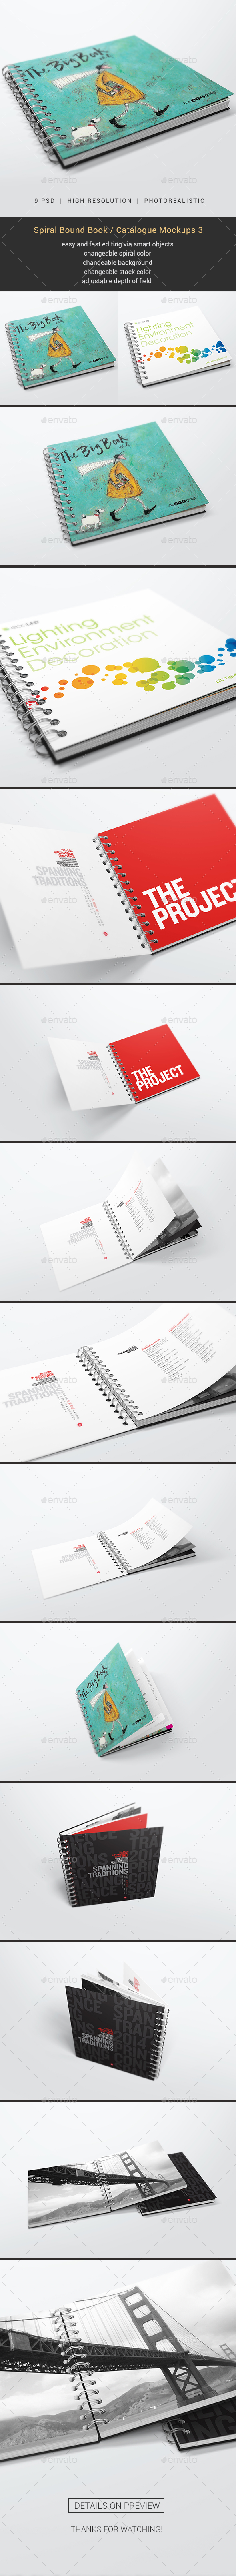 Spiral Bound Book / Catalogue Mockups 3 - Books Print